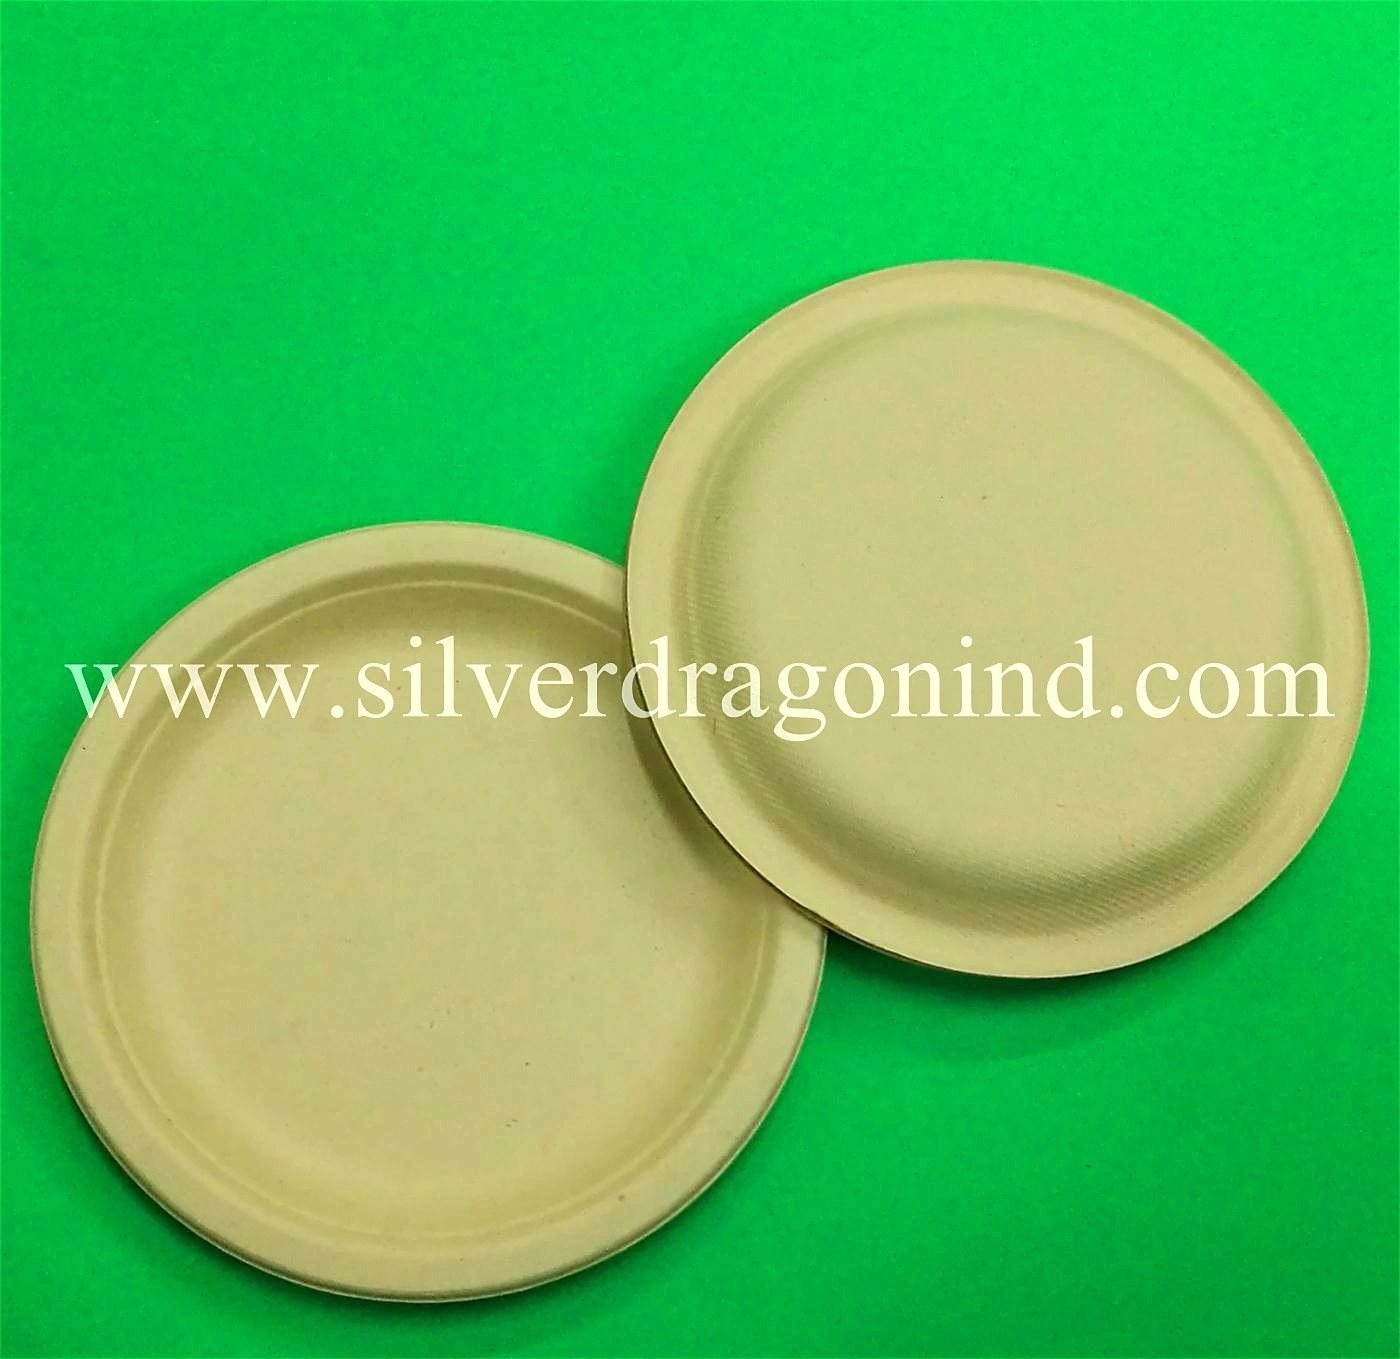 China Biodegradable Wheat Straw Pulp Paper Plate Compostable Eco-Friendly - China Paper Plate Biodegradable Paper Plate  sc 1 st  Silver Dragon Industrial Limited & China Biodegradable Wheat Straw Pulp Paper Plate Compostable Eco ...